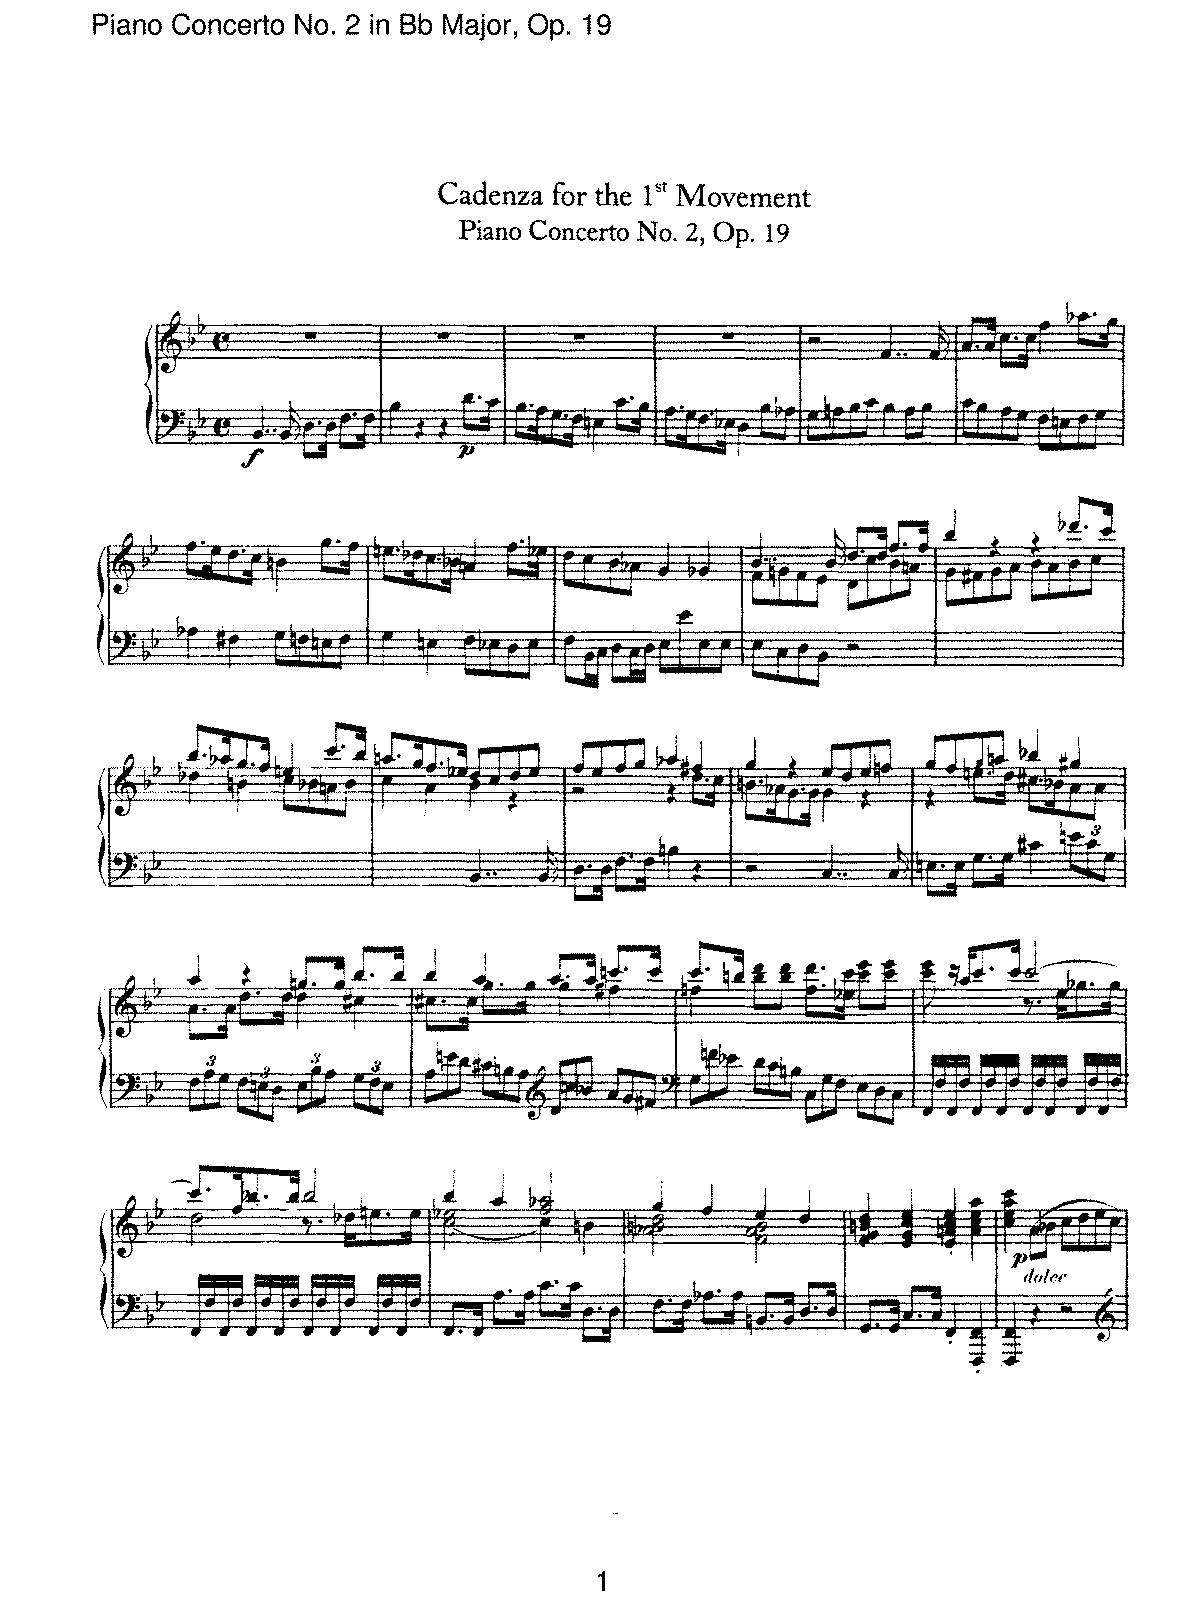 Piano Concerto No. 2 in Bb Major, Op. 19-Cadenza.pdf